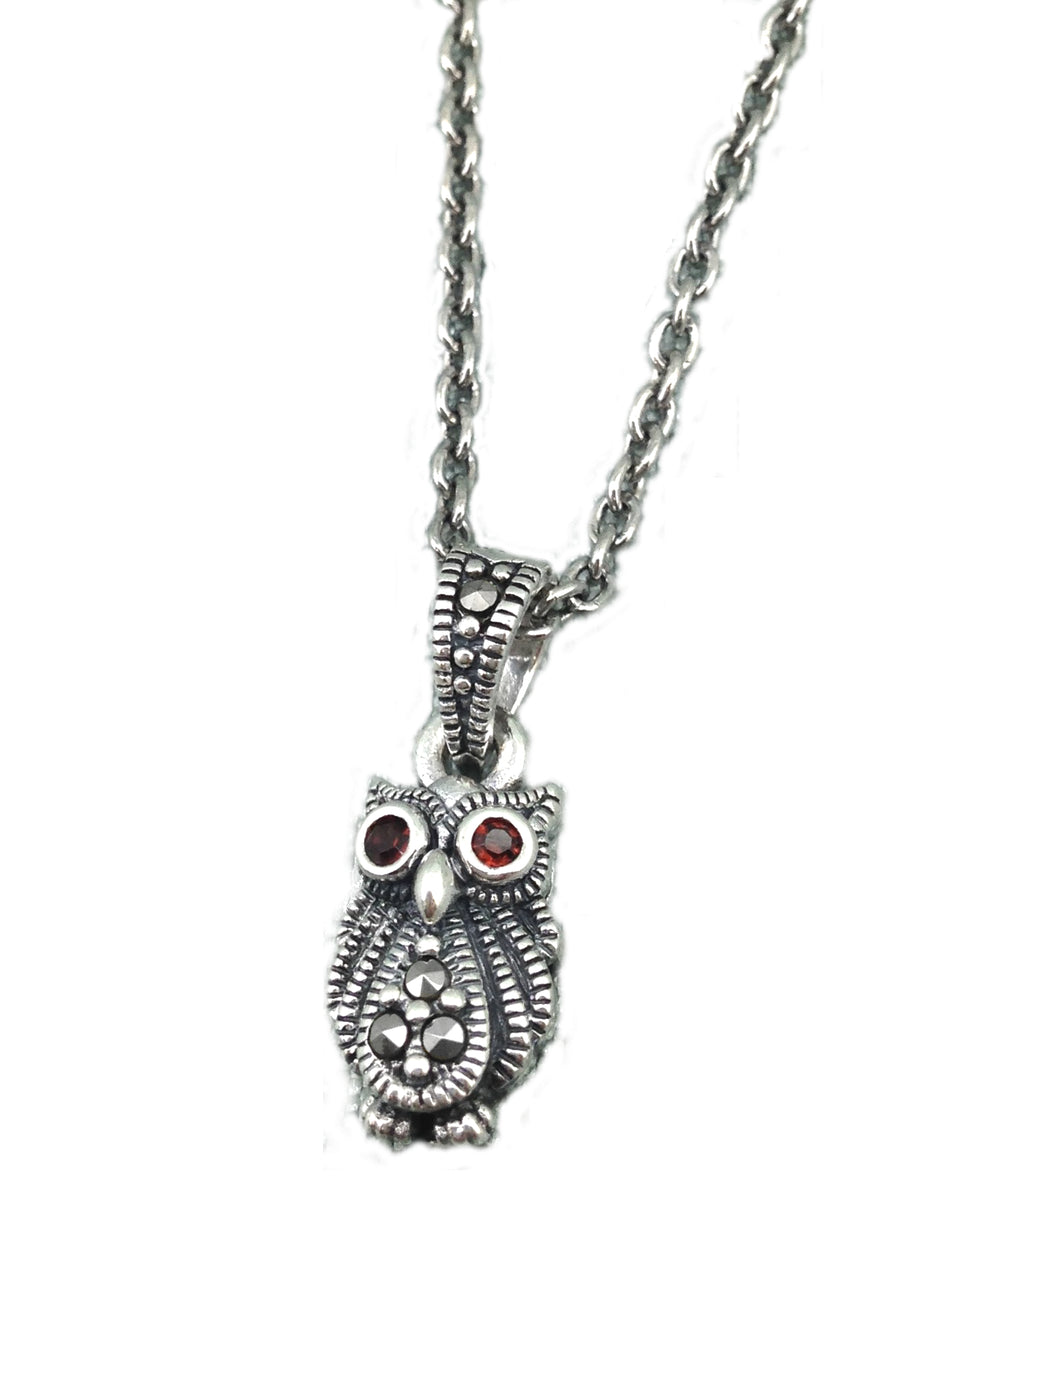 Marcasite Owl Pendant - Vintage Style Jewellery by Chicago Marcasite Jewellery